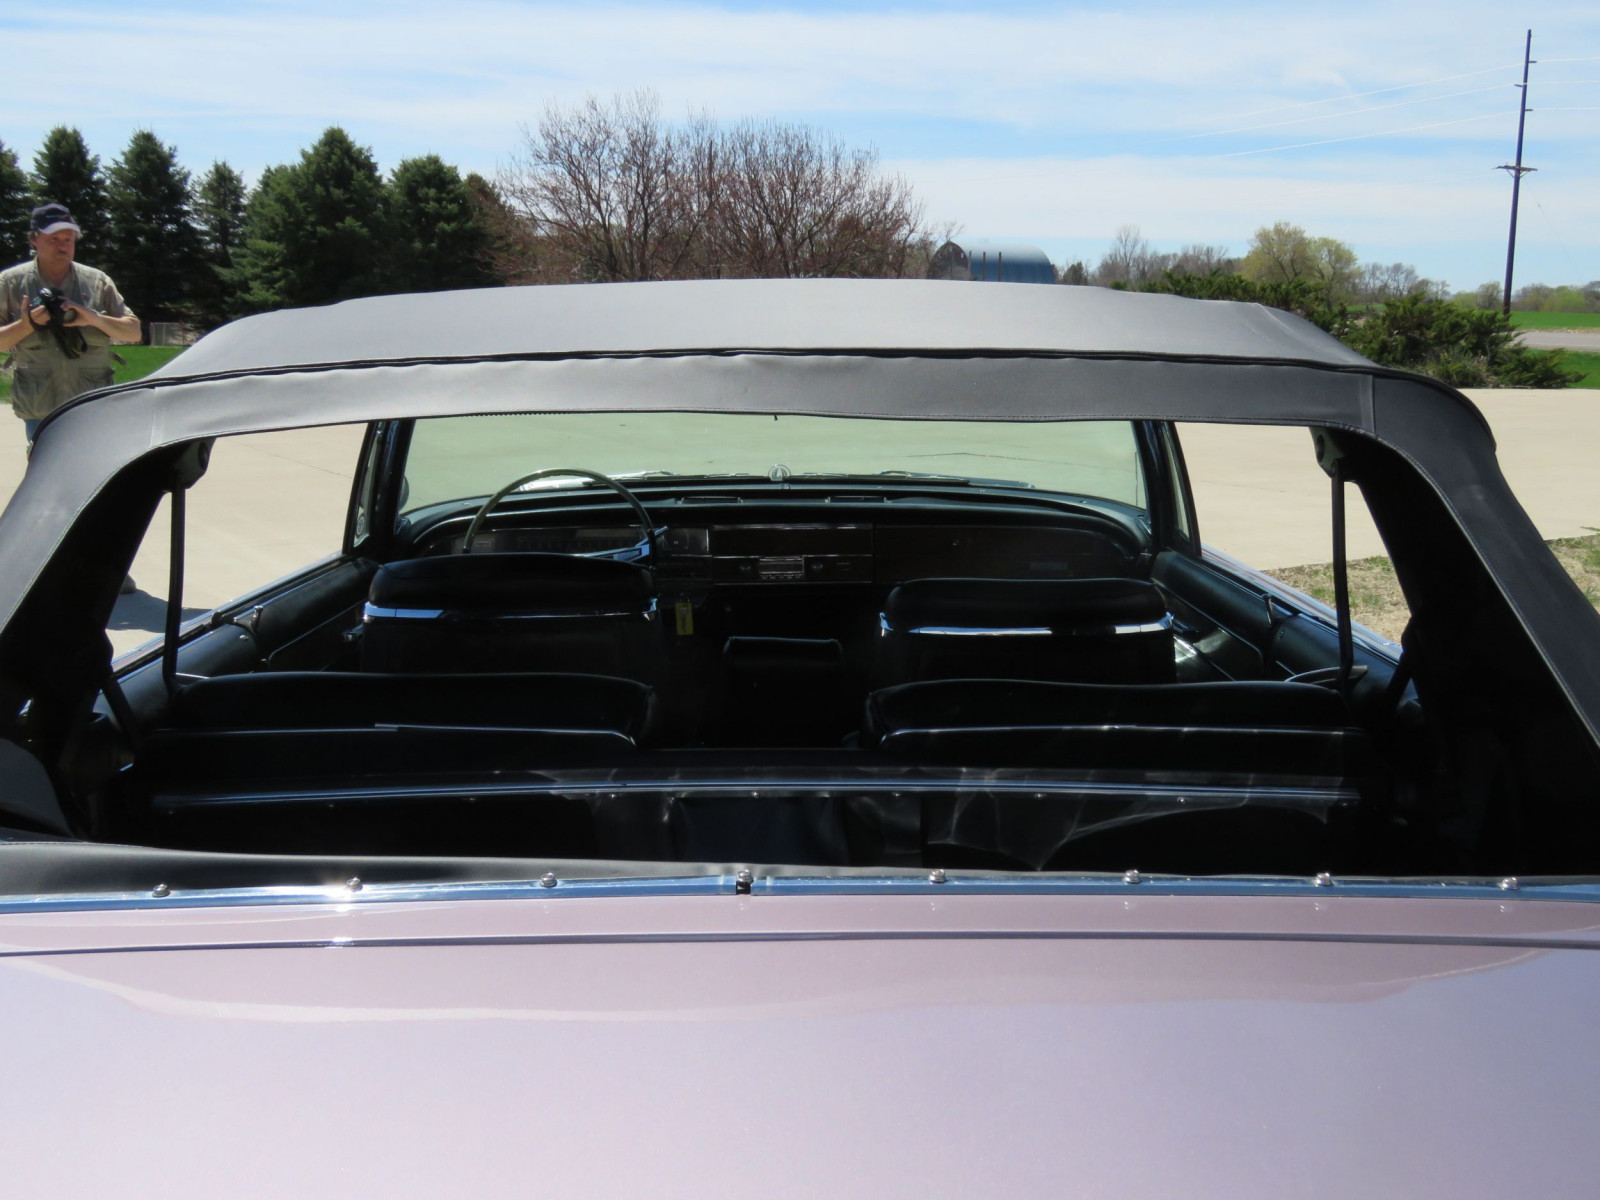 1966 Chrysler Imperial Crown Convertible - Image 14